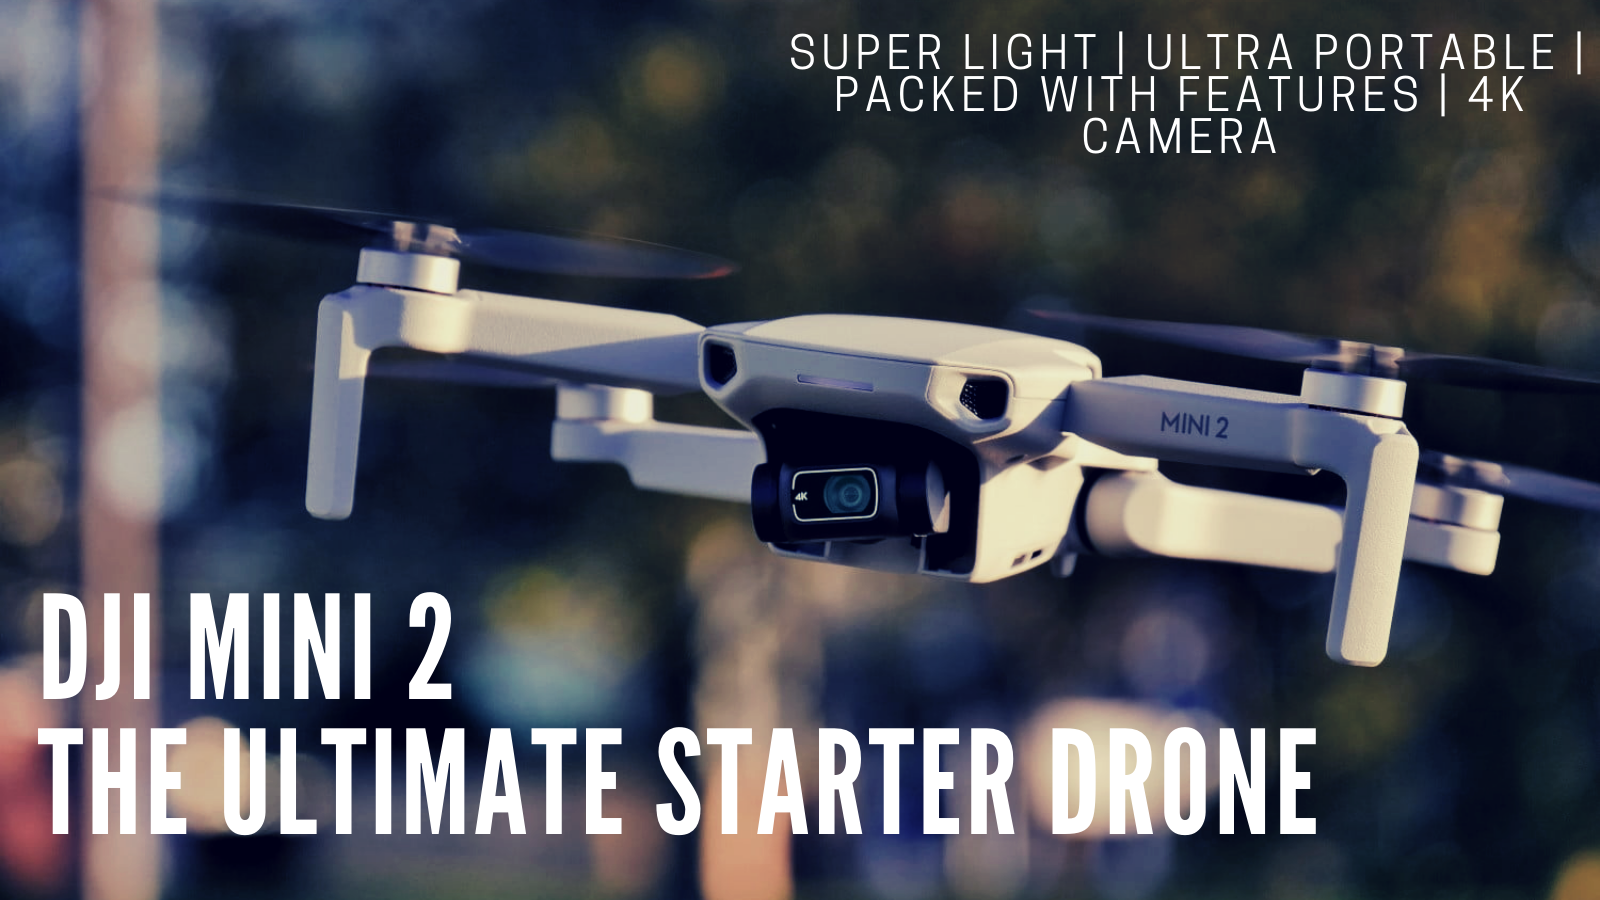 Why The DJI Mini 2 Is The Ultimate Starter Drone